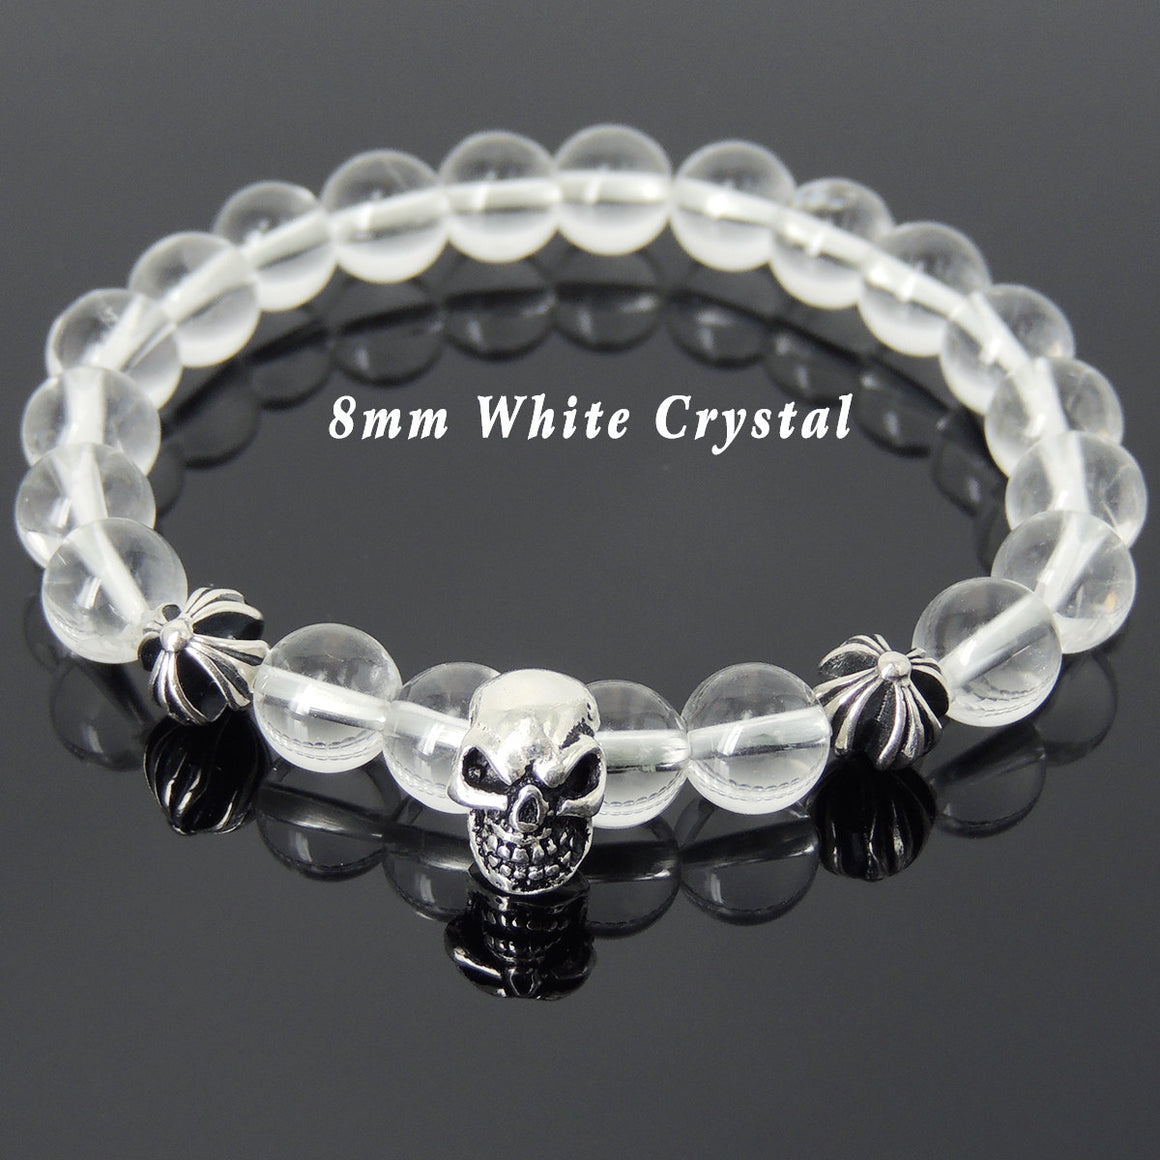 8mm White Crystal Quartz Healing Gemstone Bracelet with S925 Sterling Silver Protective Skull & Cross Beads- Handmade by Gem & Silver BR759